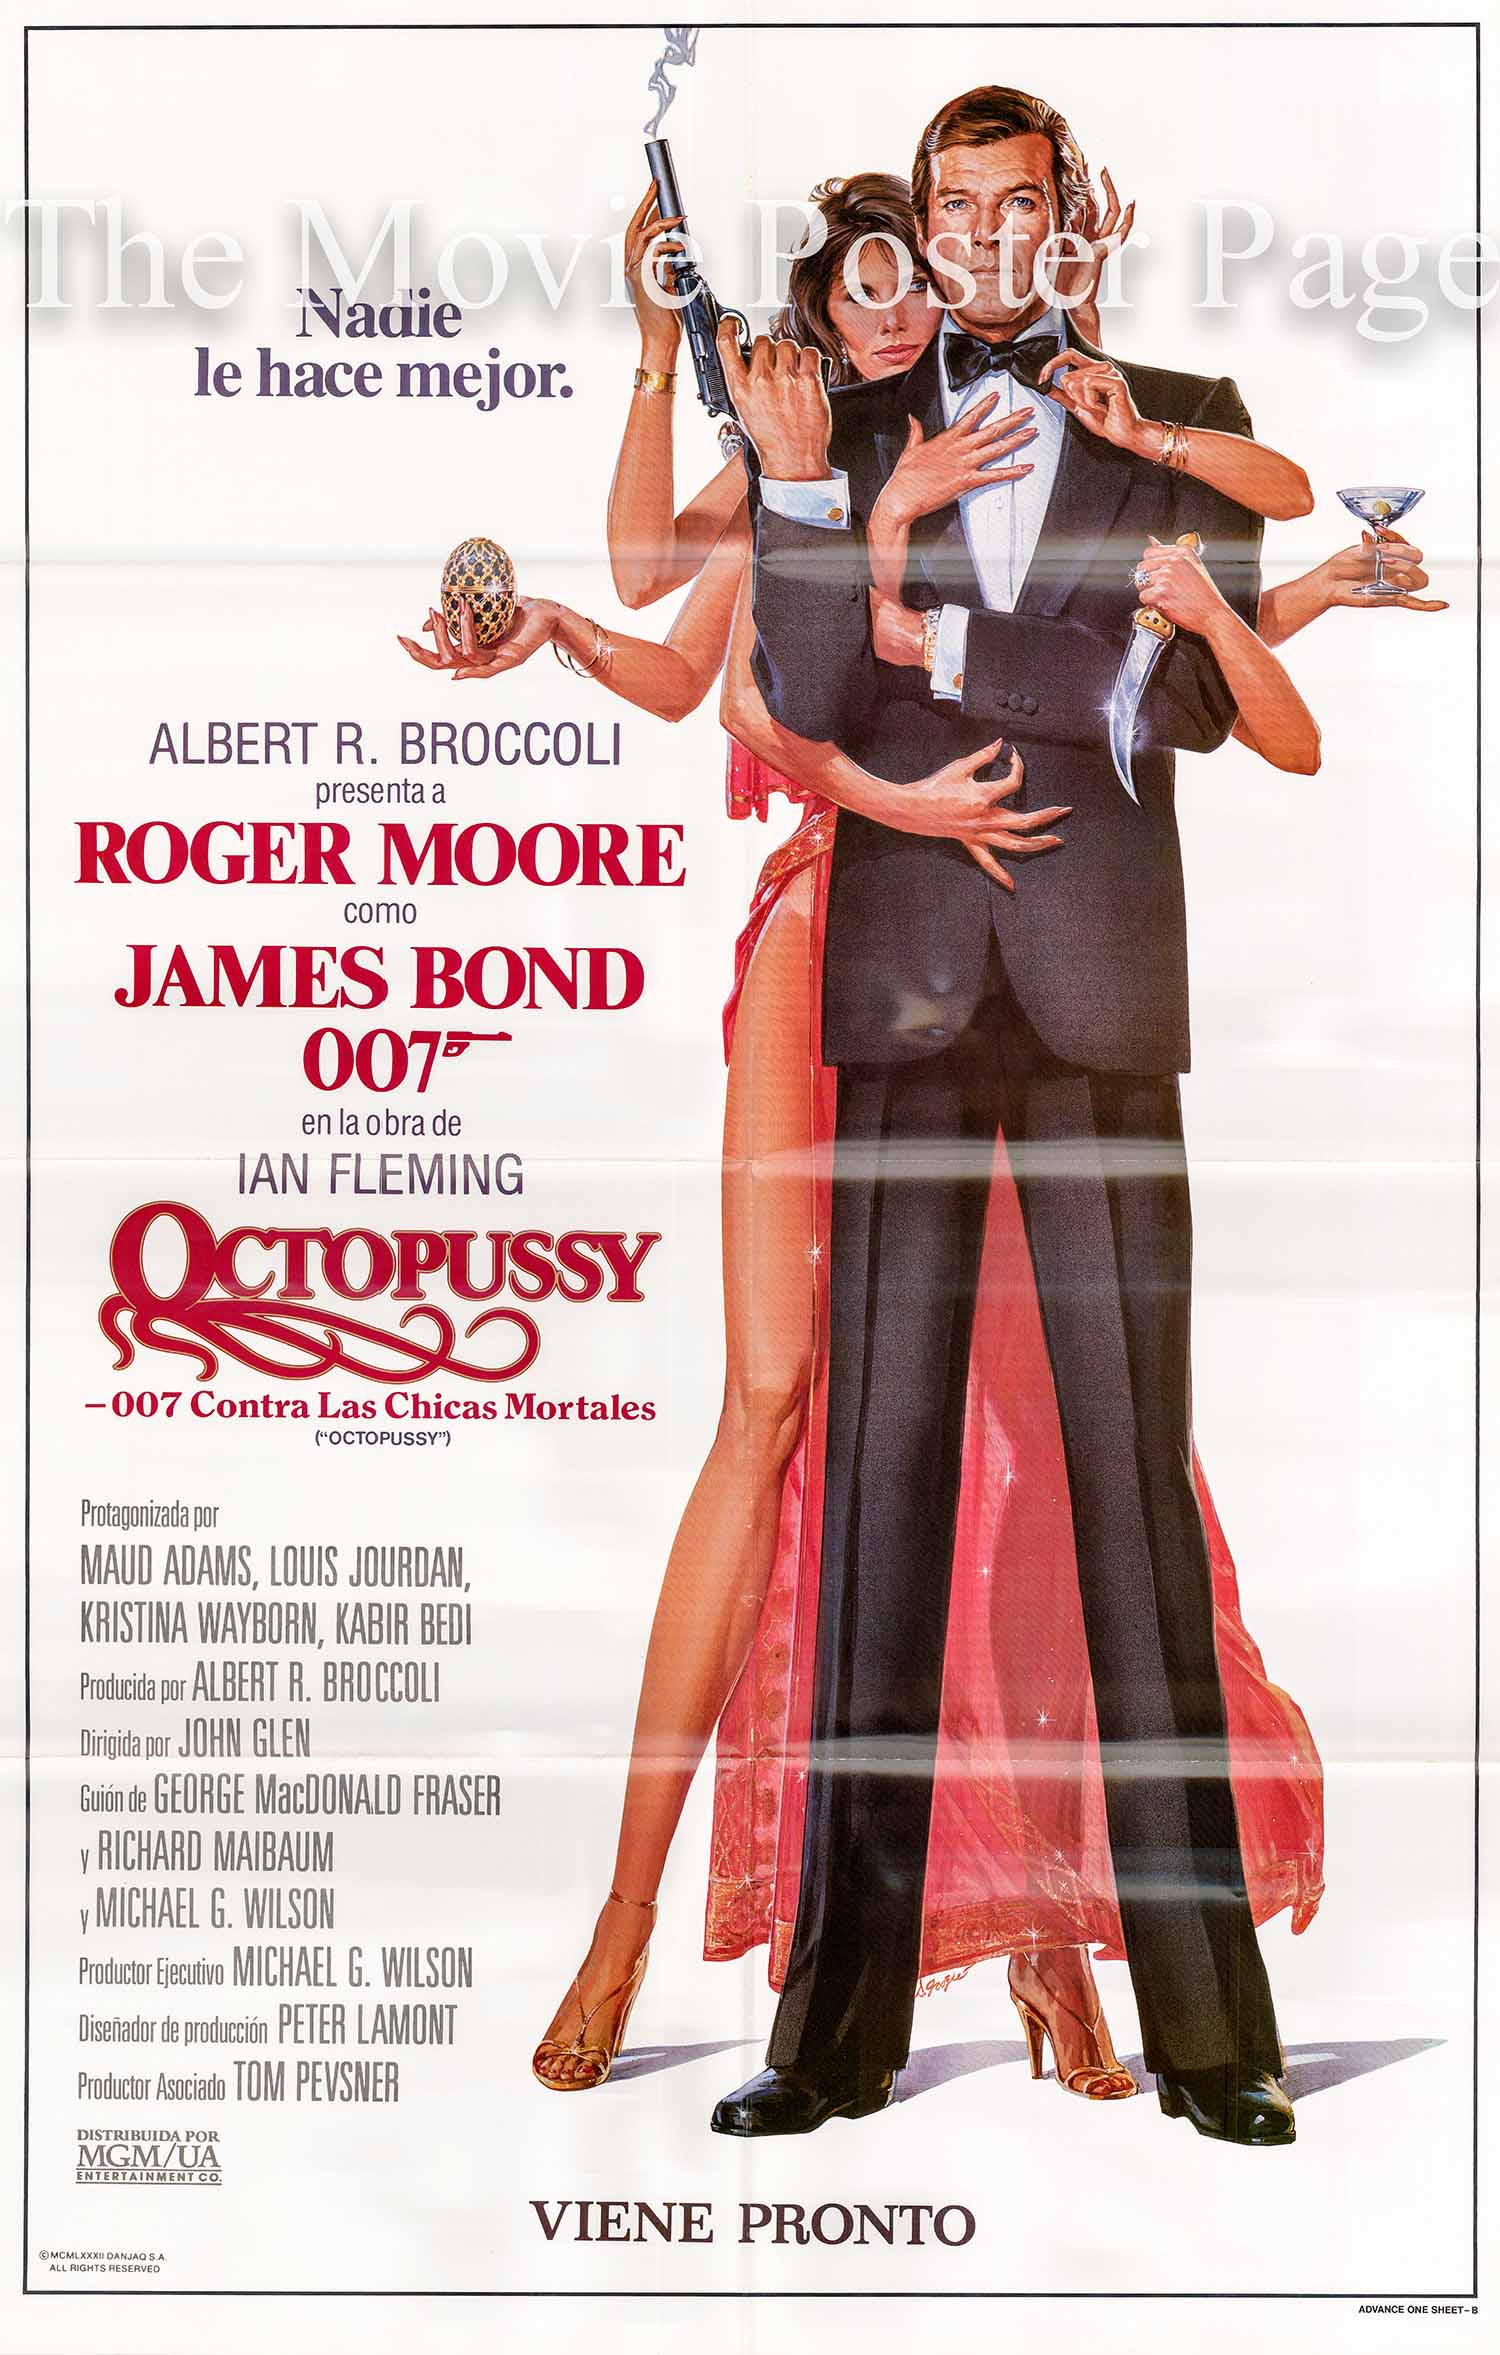 Pictured is a Spanish one-sheet advance poster made to promote the 1983 John Glen film Octopussy starring Roger Moore as James Bond.